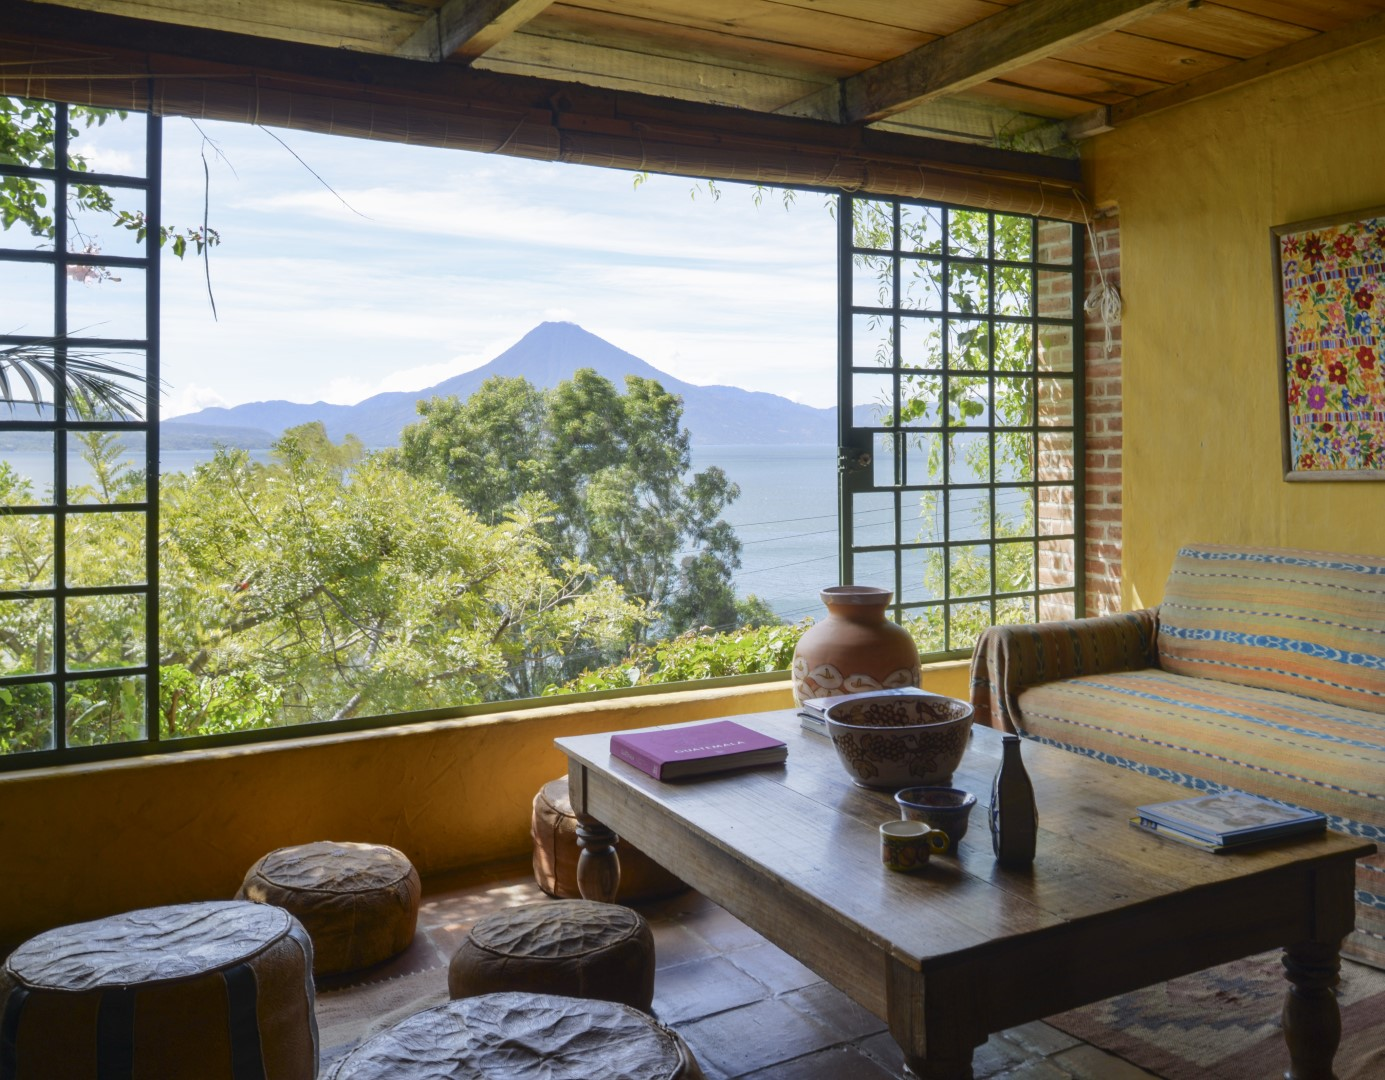 Indoor seating area with volcano view at Casa Palopo in Lake Atitlan